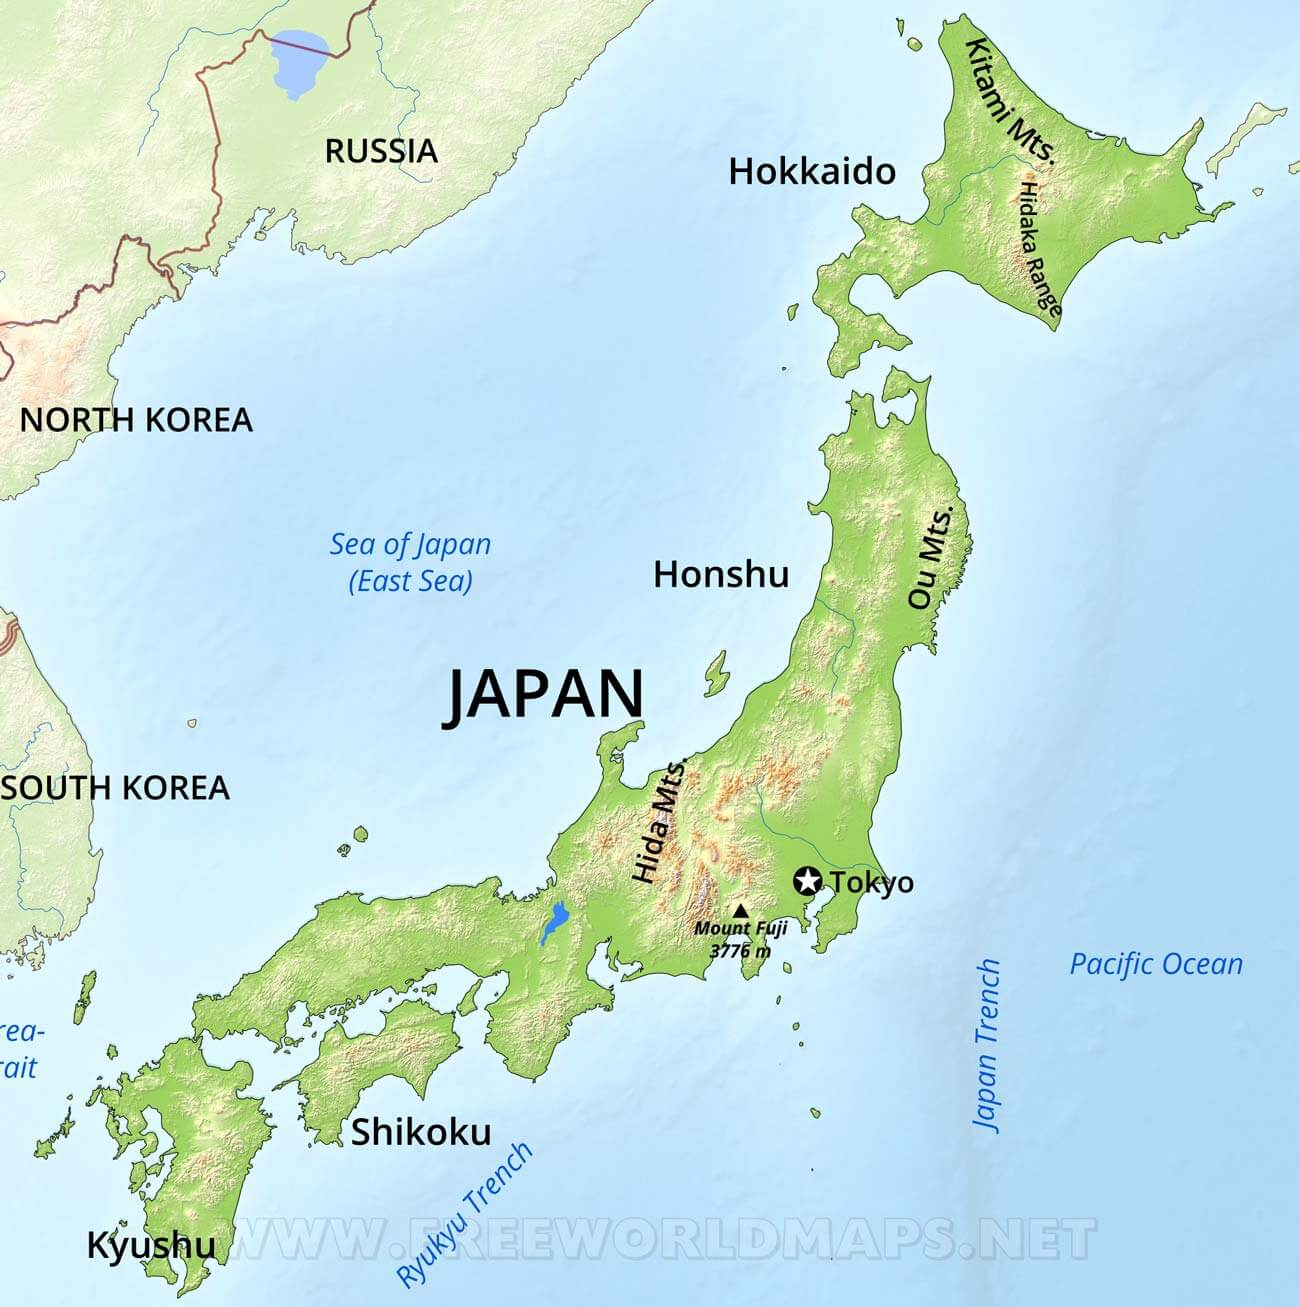 Japan Physical Map on italy map, united states map, japanese map, iraq map, india map, france map, australia map, saudi arabia map, far east map, united kingdom map, germany map, brazil map, russia map, africa map, america map, california map, korea map, canada map, europe map,